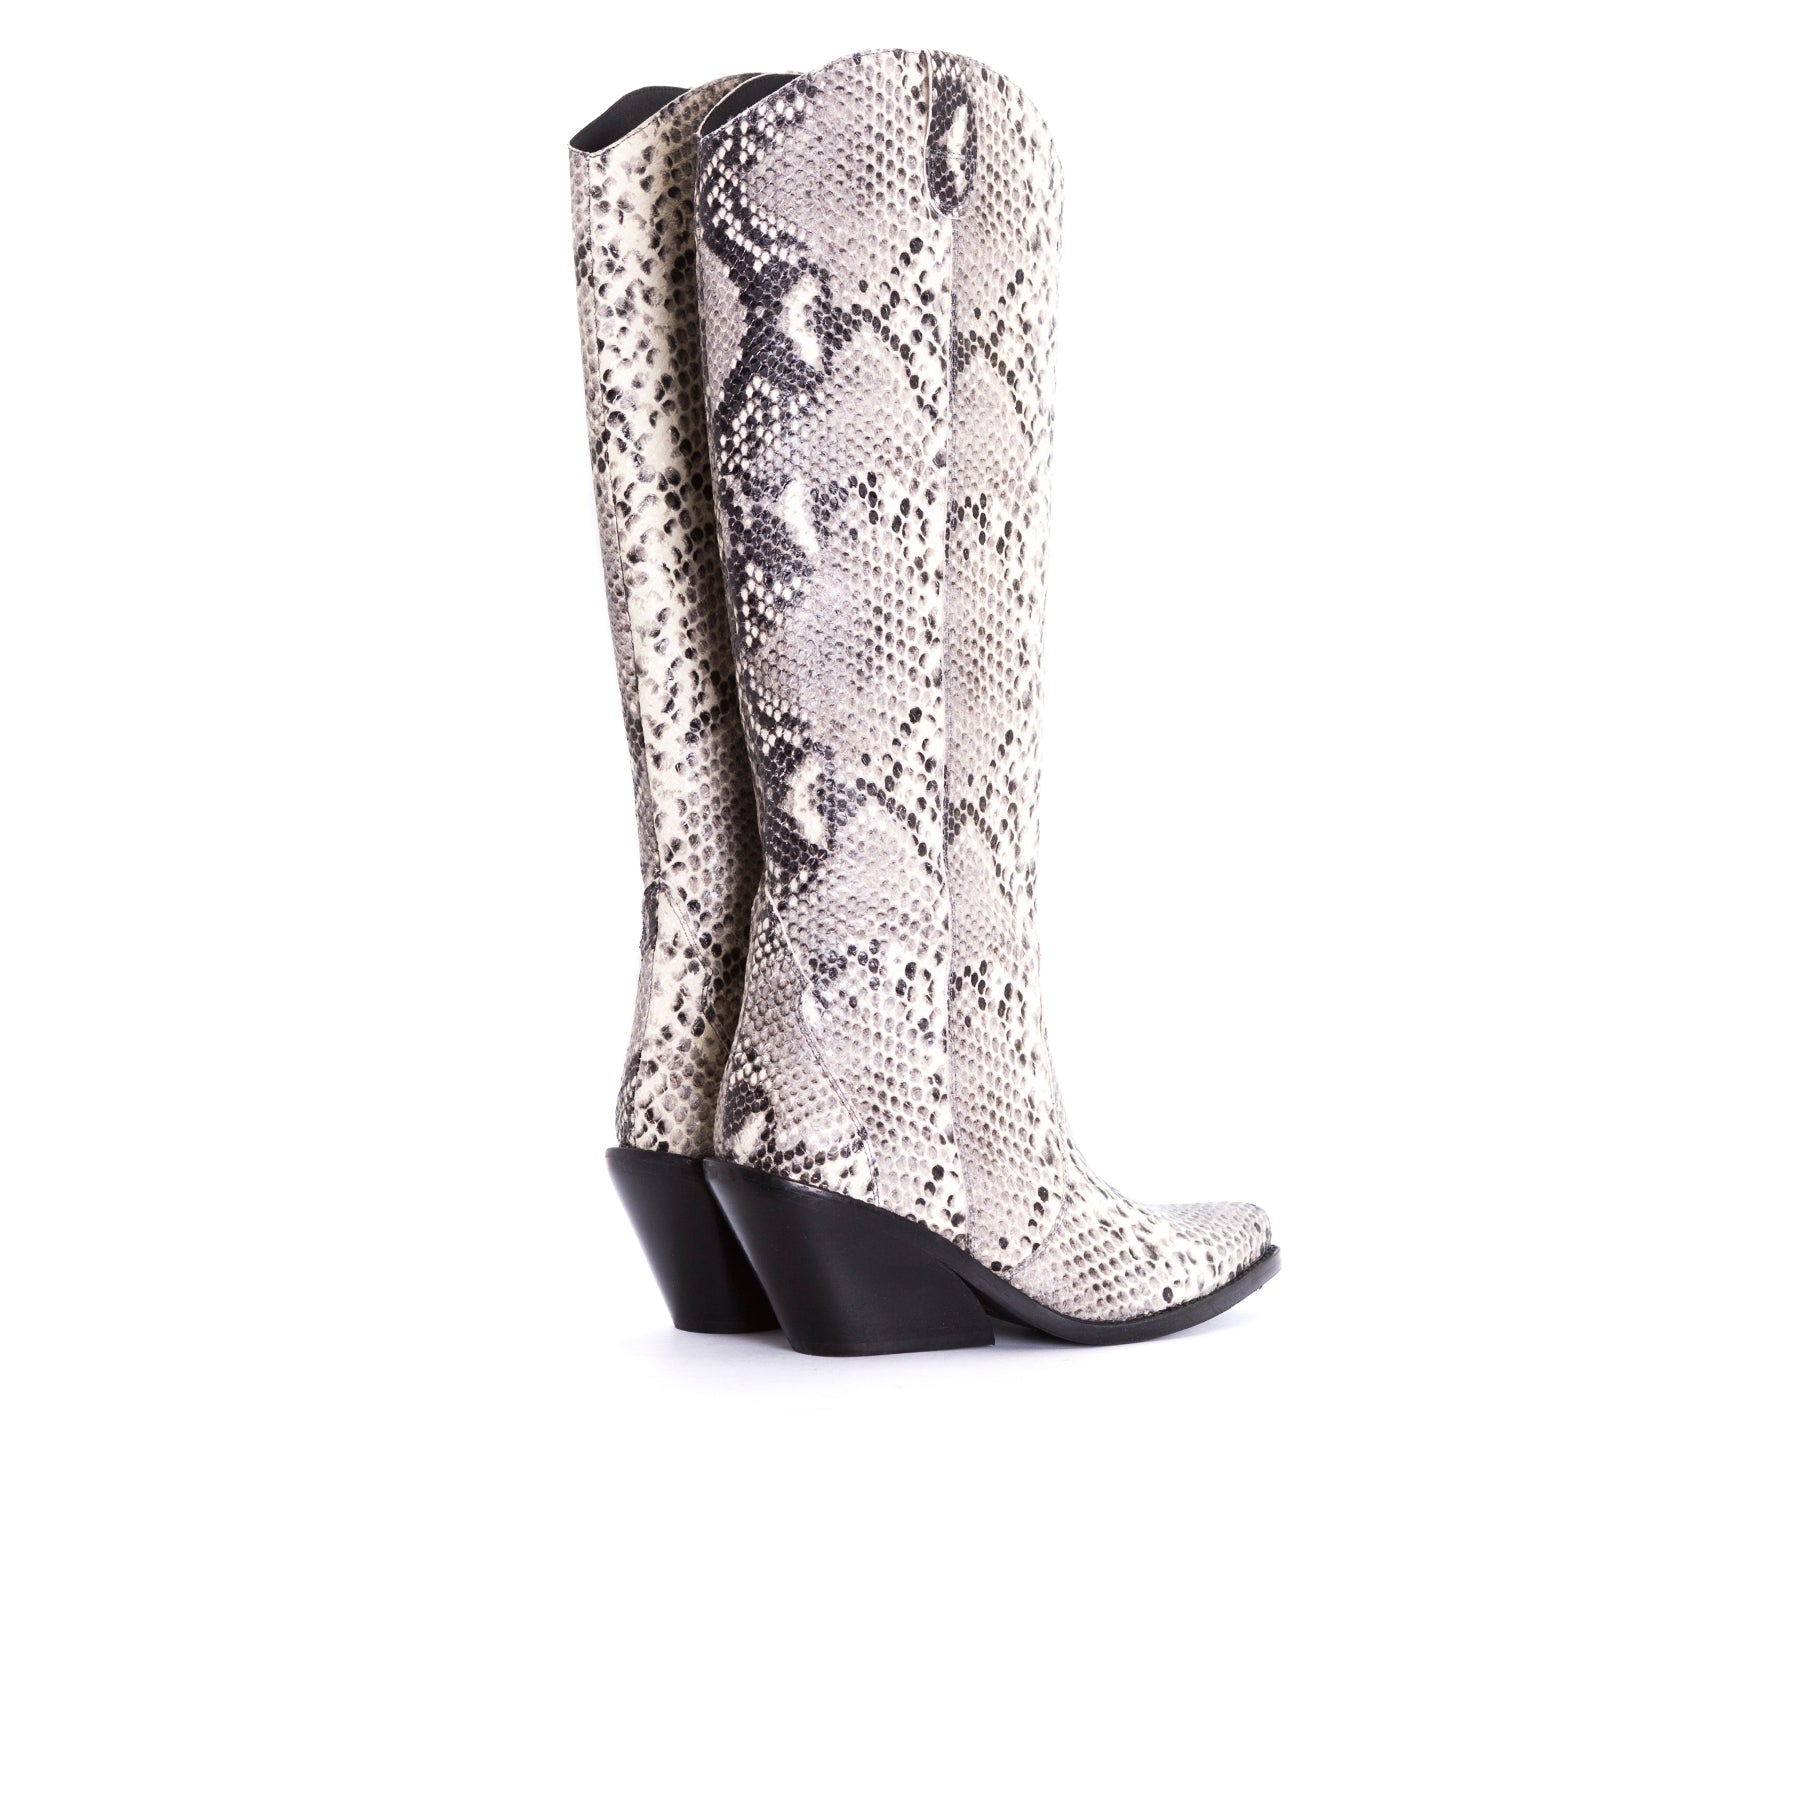 Roky Natural Snake Leather Boots